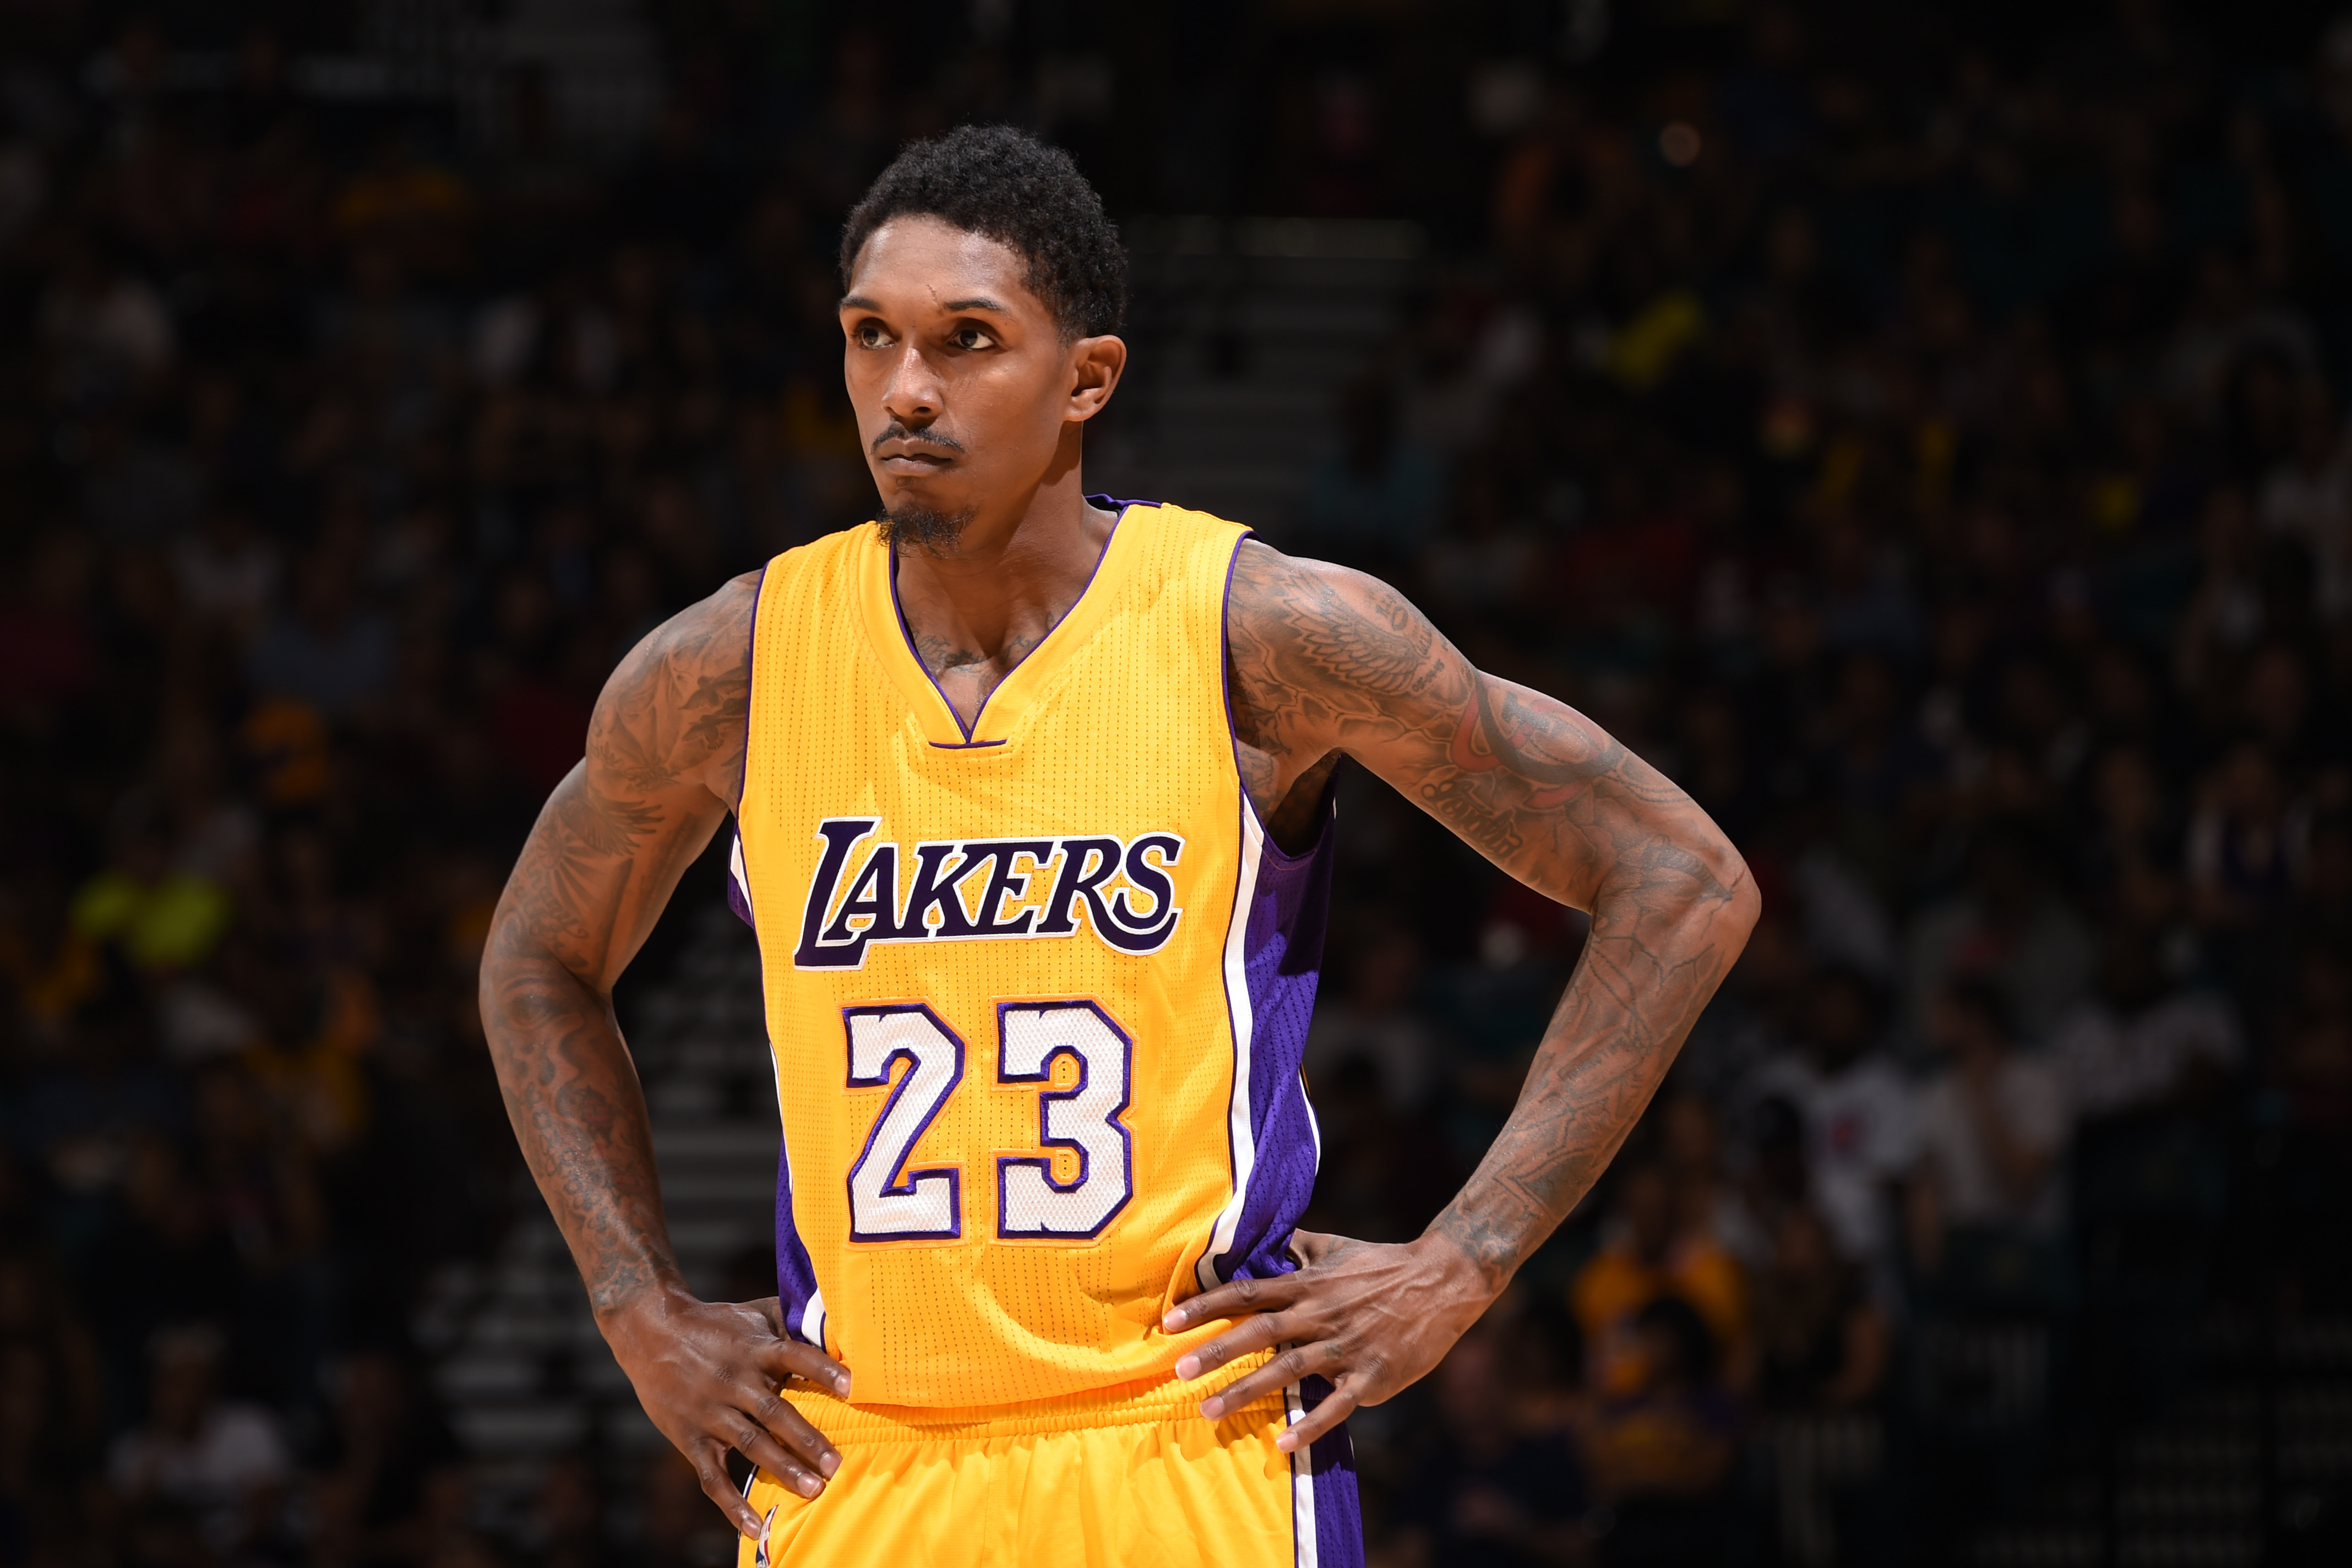 wholesale dealer 40114 6bb21 Lou Williams: 'Lakers Traded Me Because I Refused To Tank ...